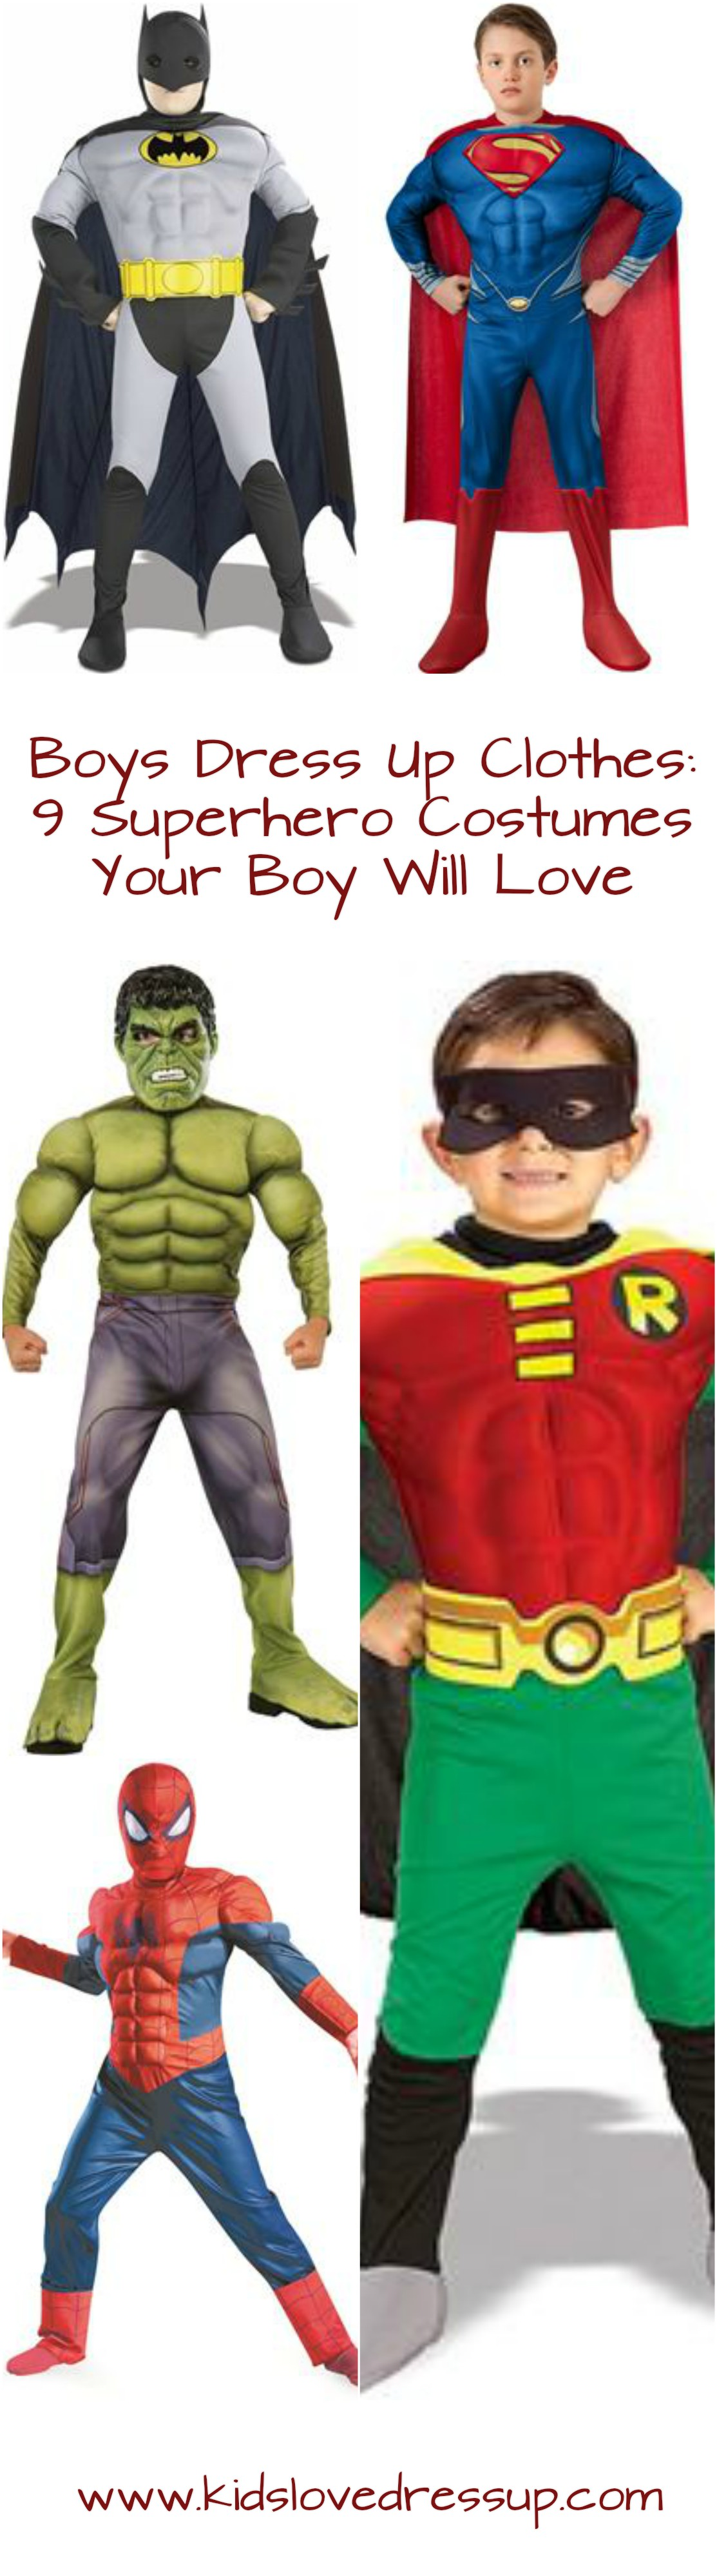 Superhero Dress Up For Boys! Looking for some great superhero costumes for boys? Look no further - we've got you covered. Kidslovedressup.com will show you which superhero costumes are the BEST! Superman costume, batman costume, the hulk costume, Robin costume, Spiderman costume, Captain America Costume, The Flash Costume, Superman Costume, Ironman Costume, and Super-Me Costume!